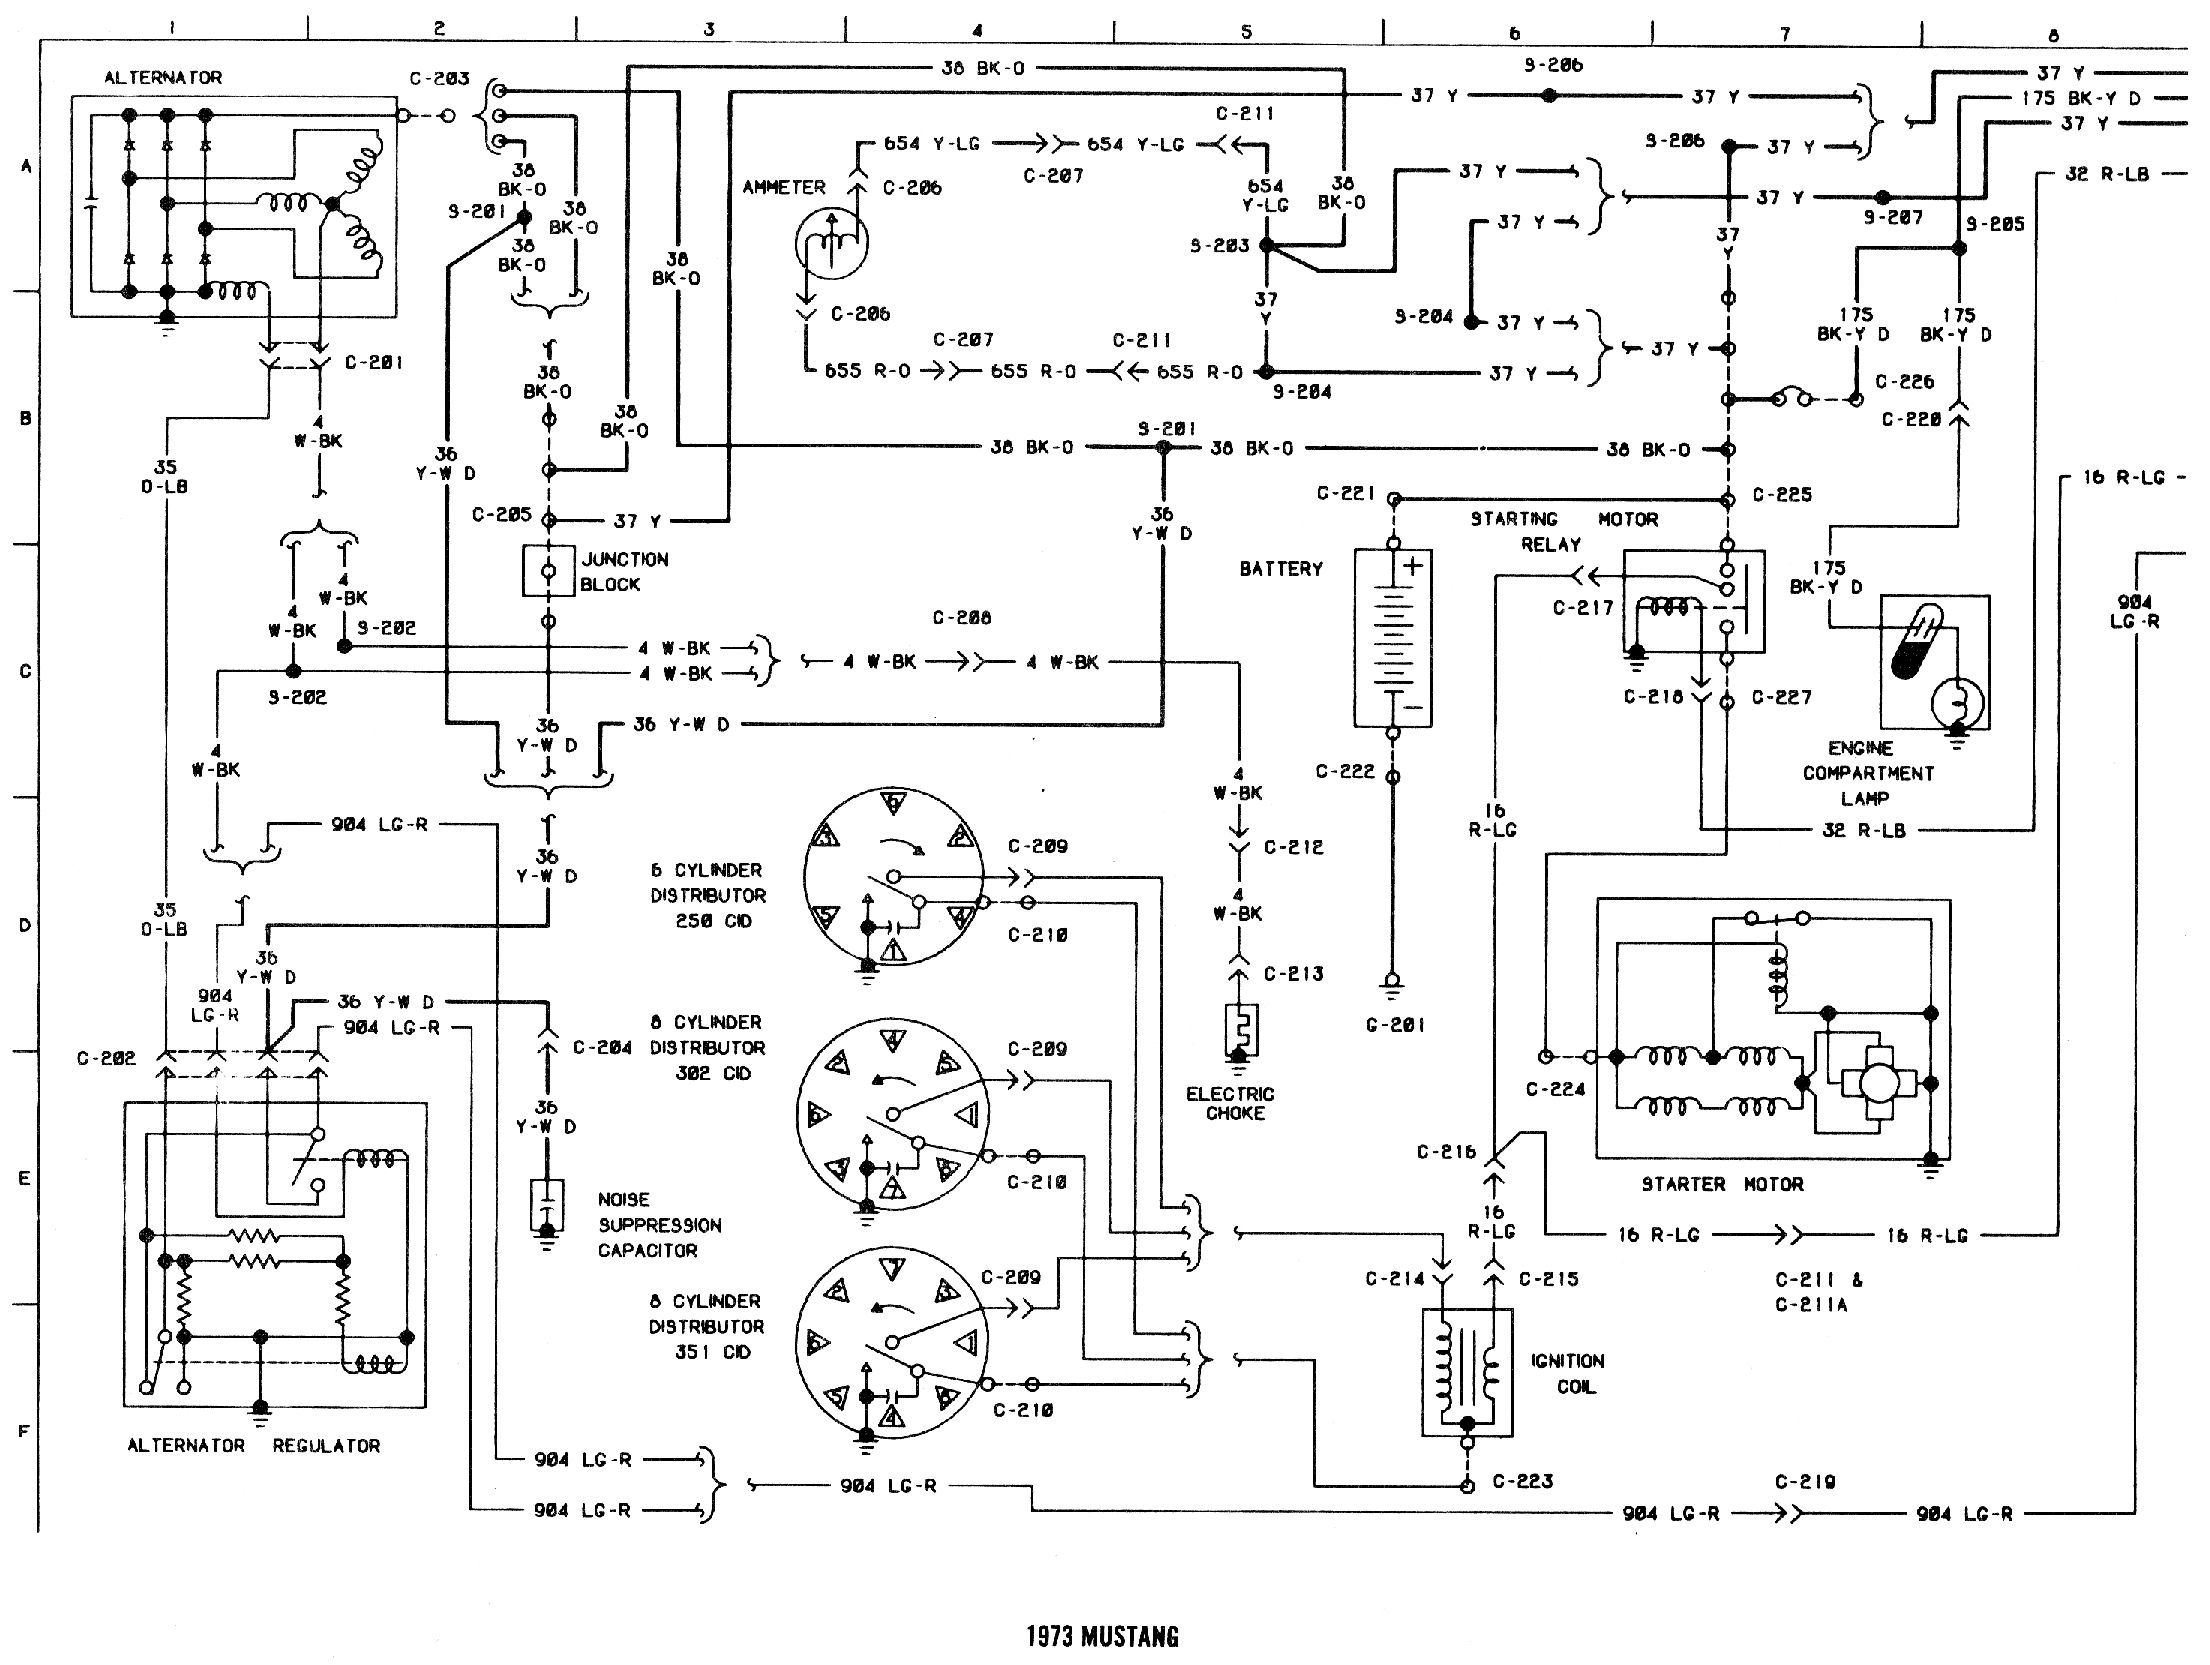 73 mustang voltage regulator wiring diagram